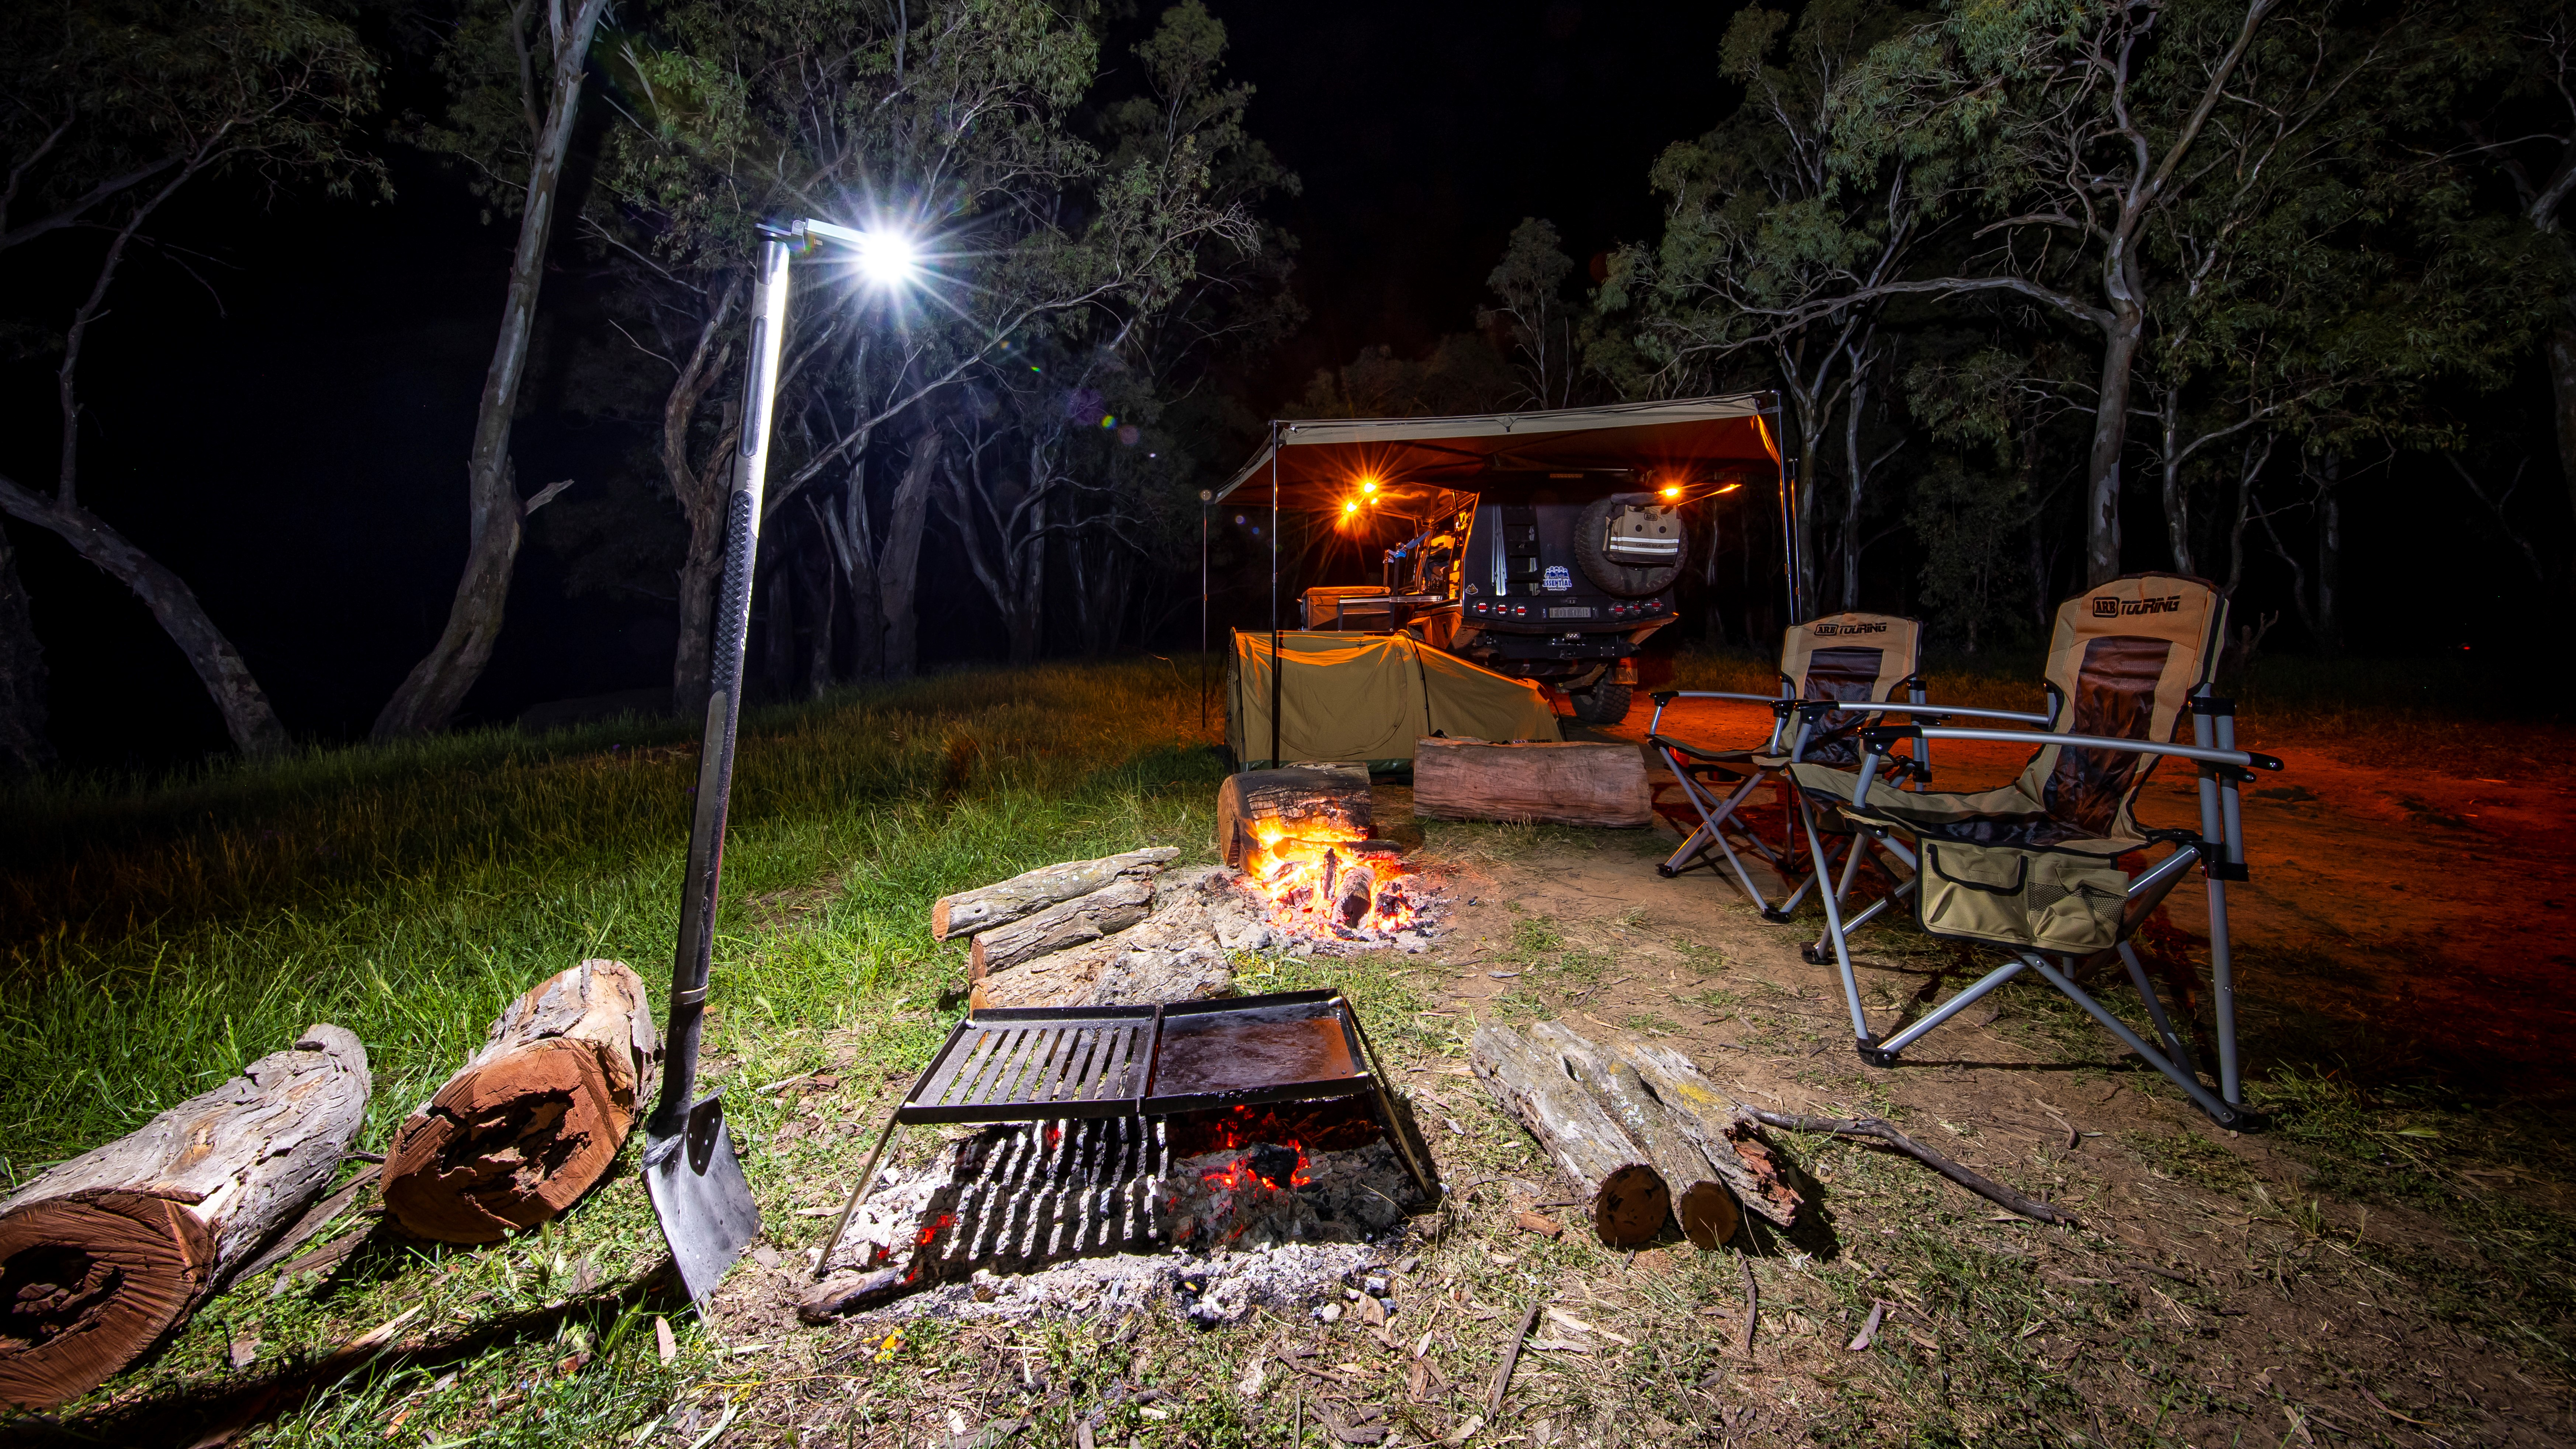 ARB Horizontal Work Light campsite